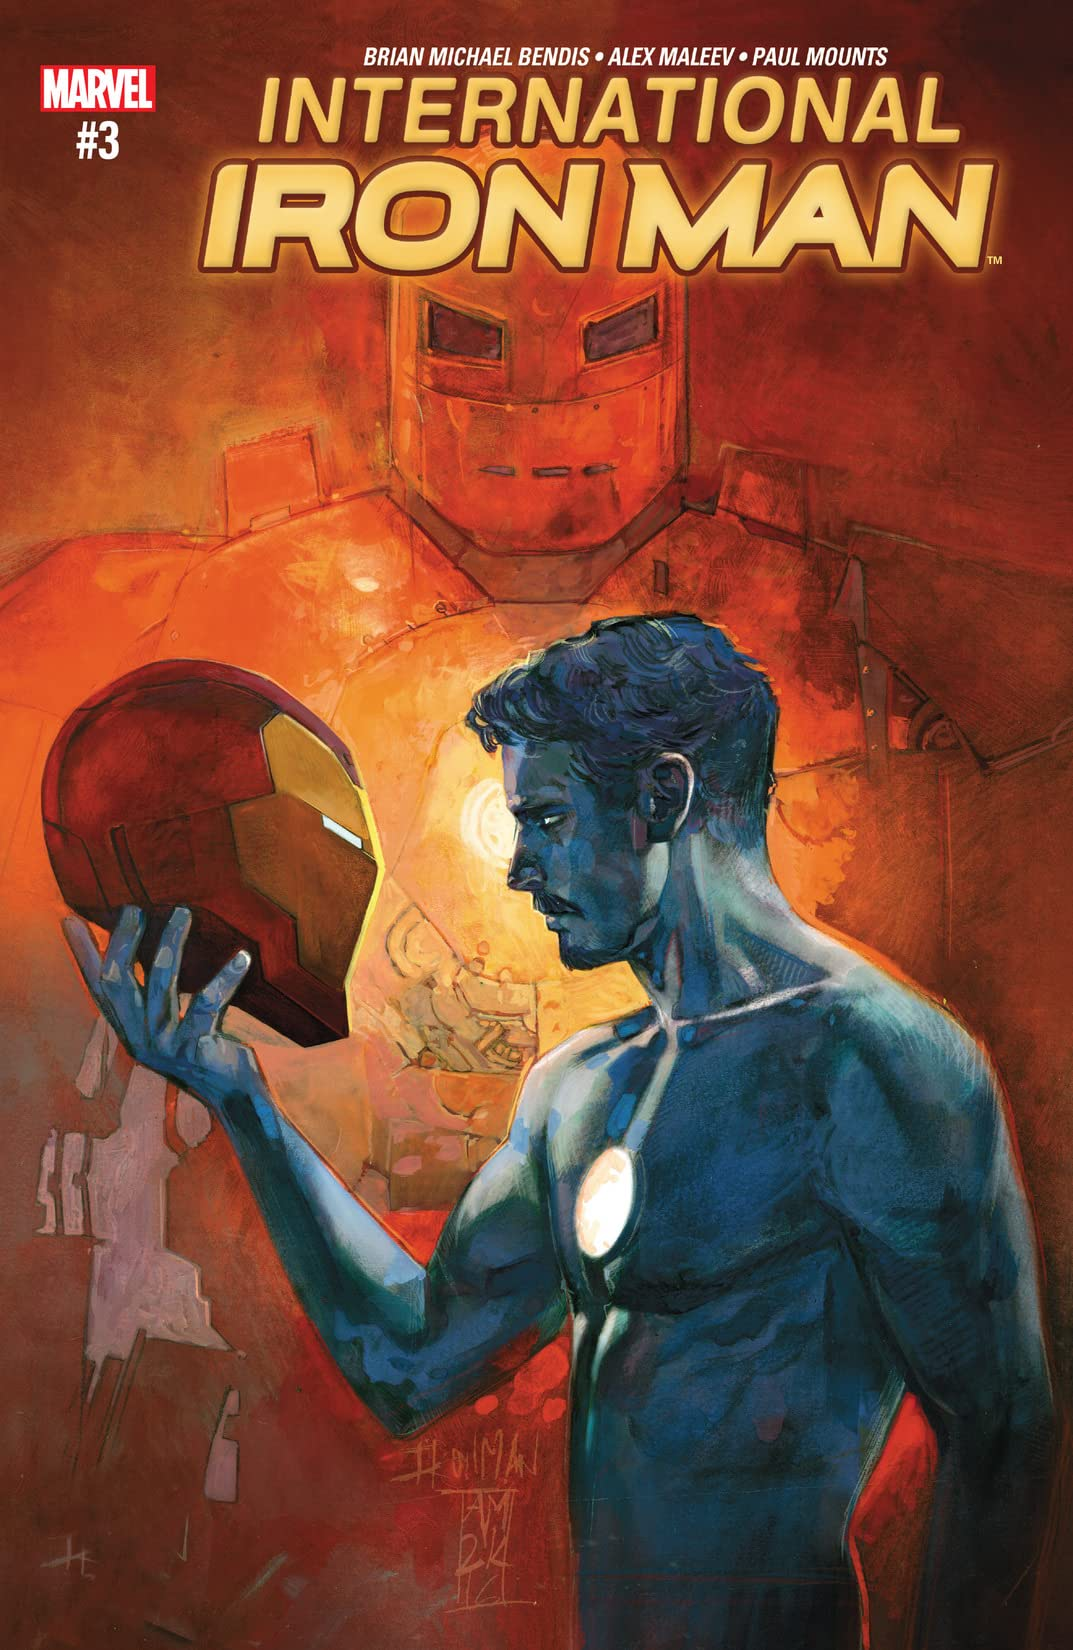 International Iron Man (2016) #3